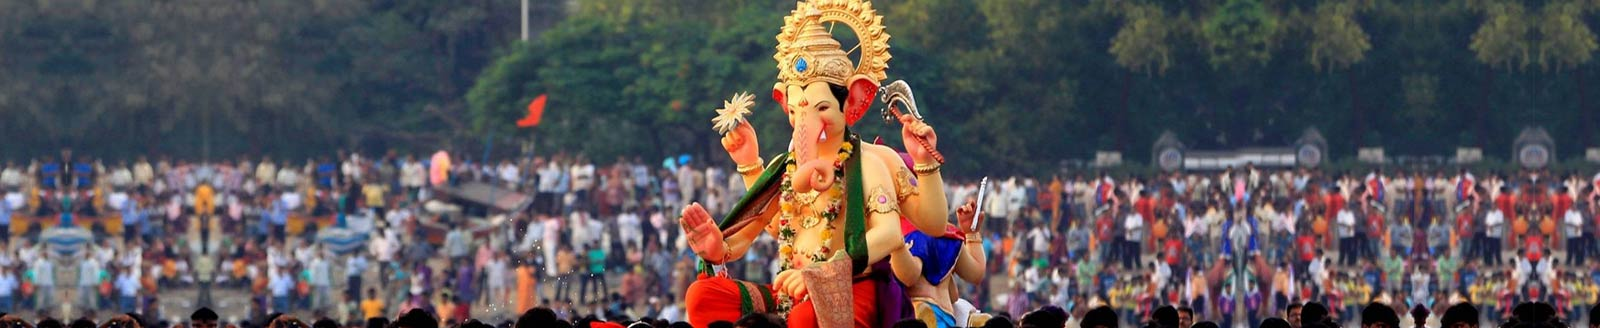 Ganesh Chaturthi Essays - Short Speech and Essay on Ganesh Chaturthi